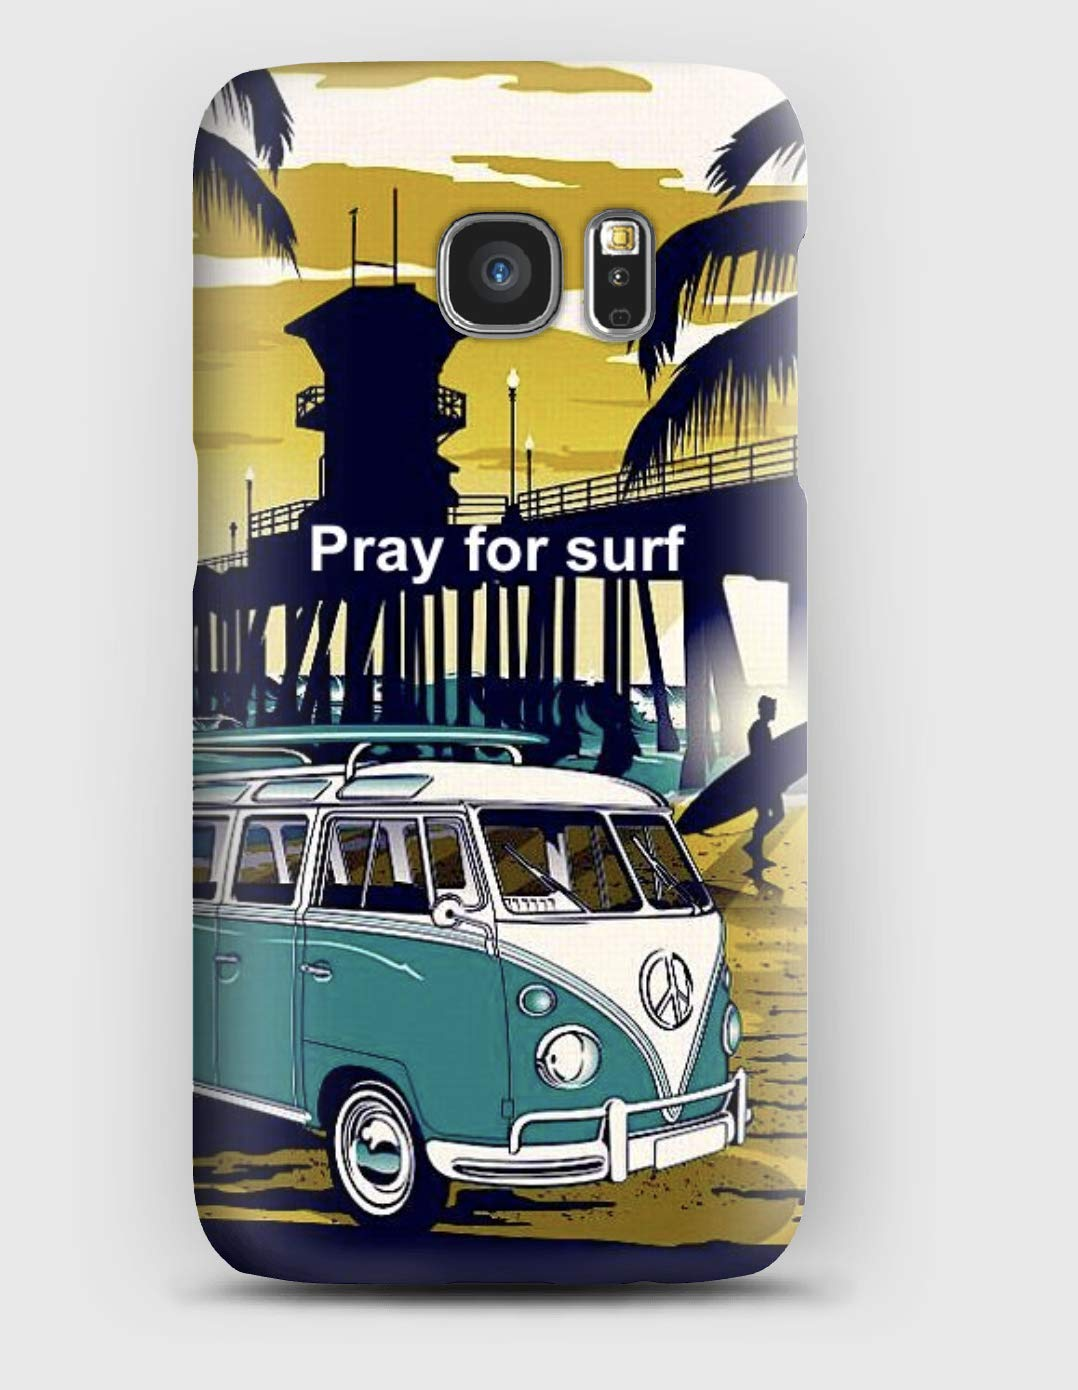 Coque Samsung S5, S6, S7, S8,S9, A3, A5, A7,A8, J3,J5, Note 4,5,8,9, Grand prime, Pray for surf